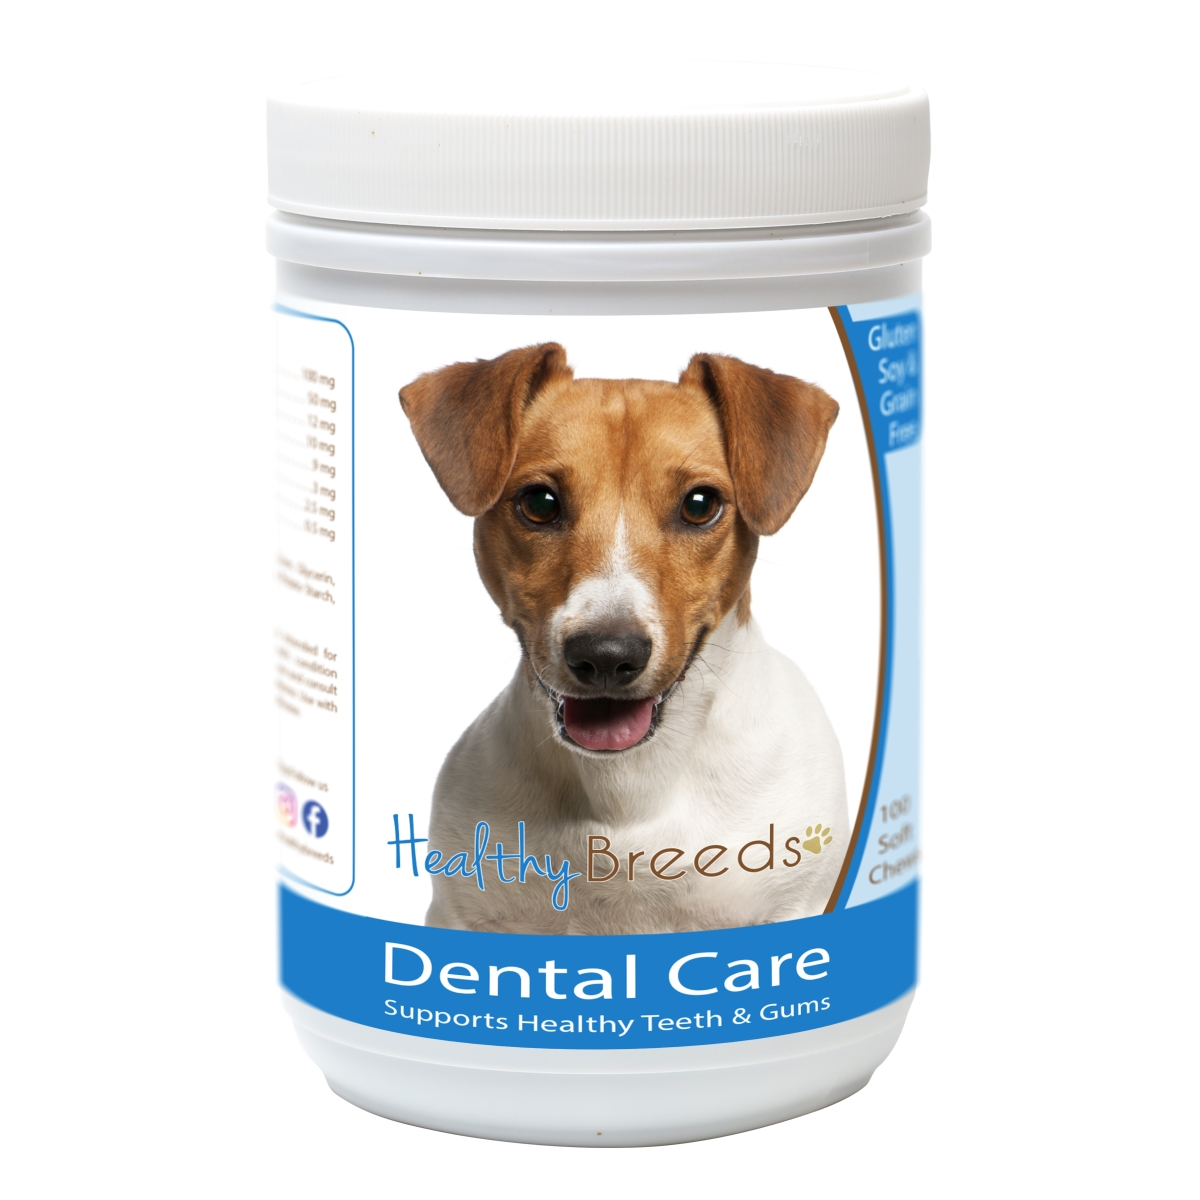 Healthy Breeds 840235163282 Jack Russell Terrier Breath Care Soft Chews for Dogs - 60 Count